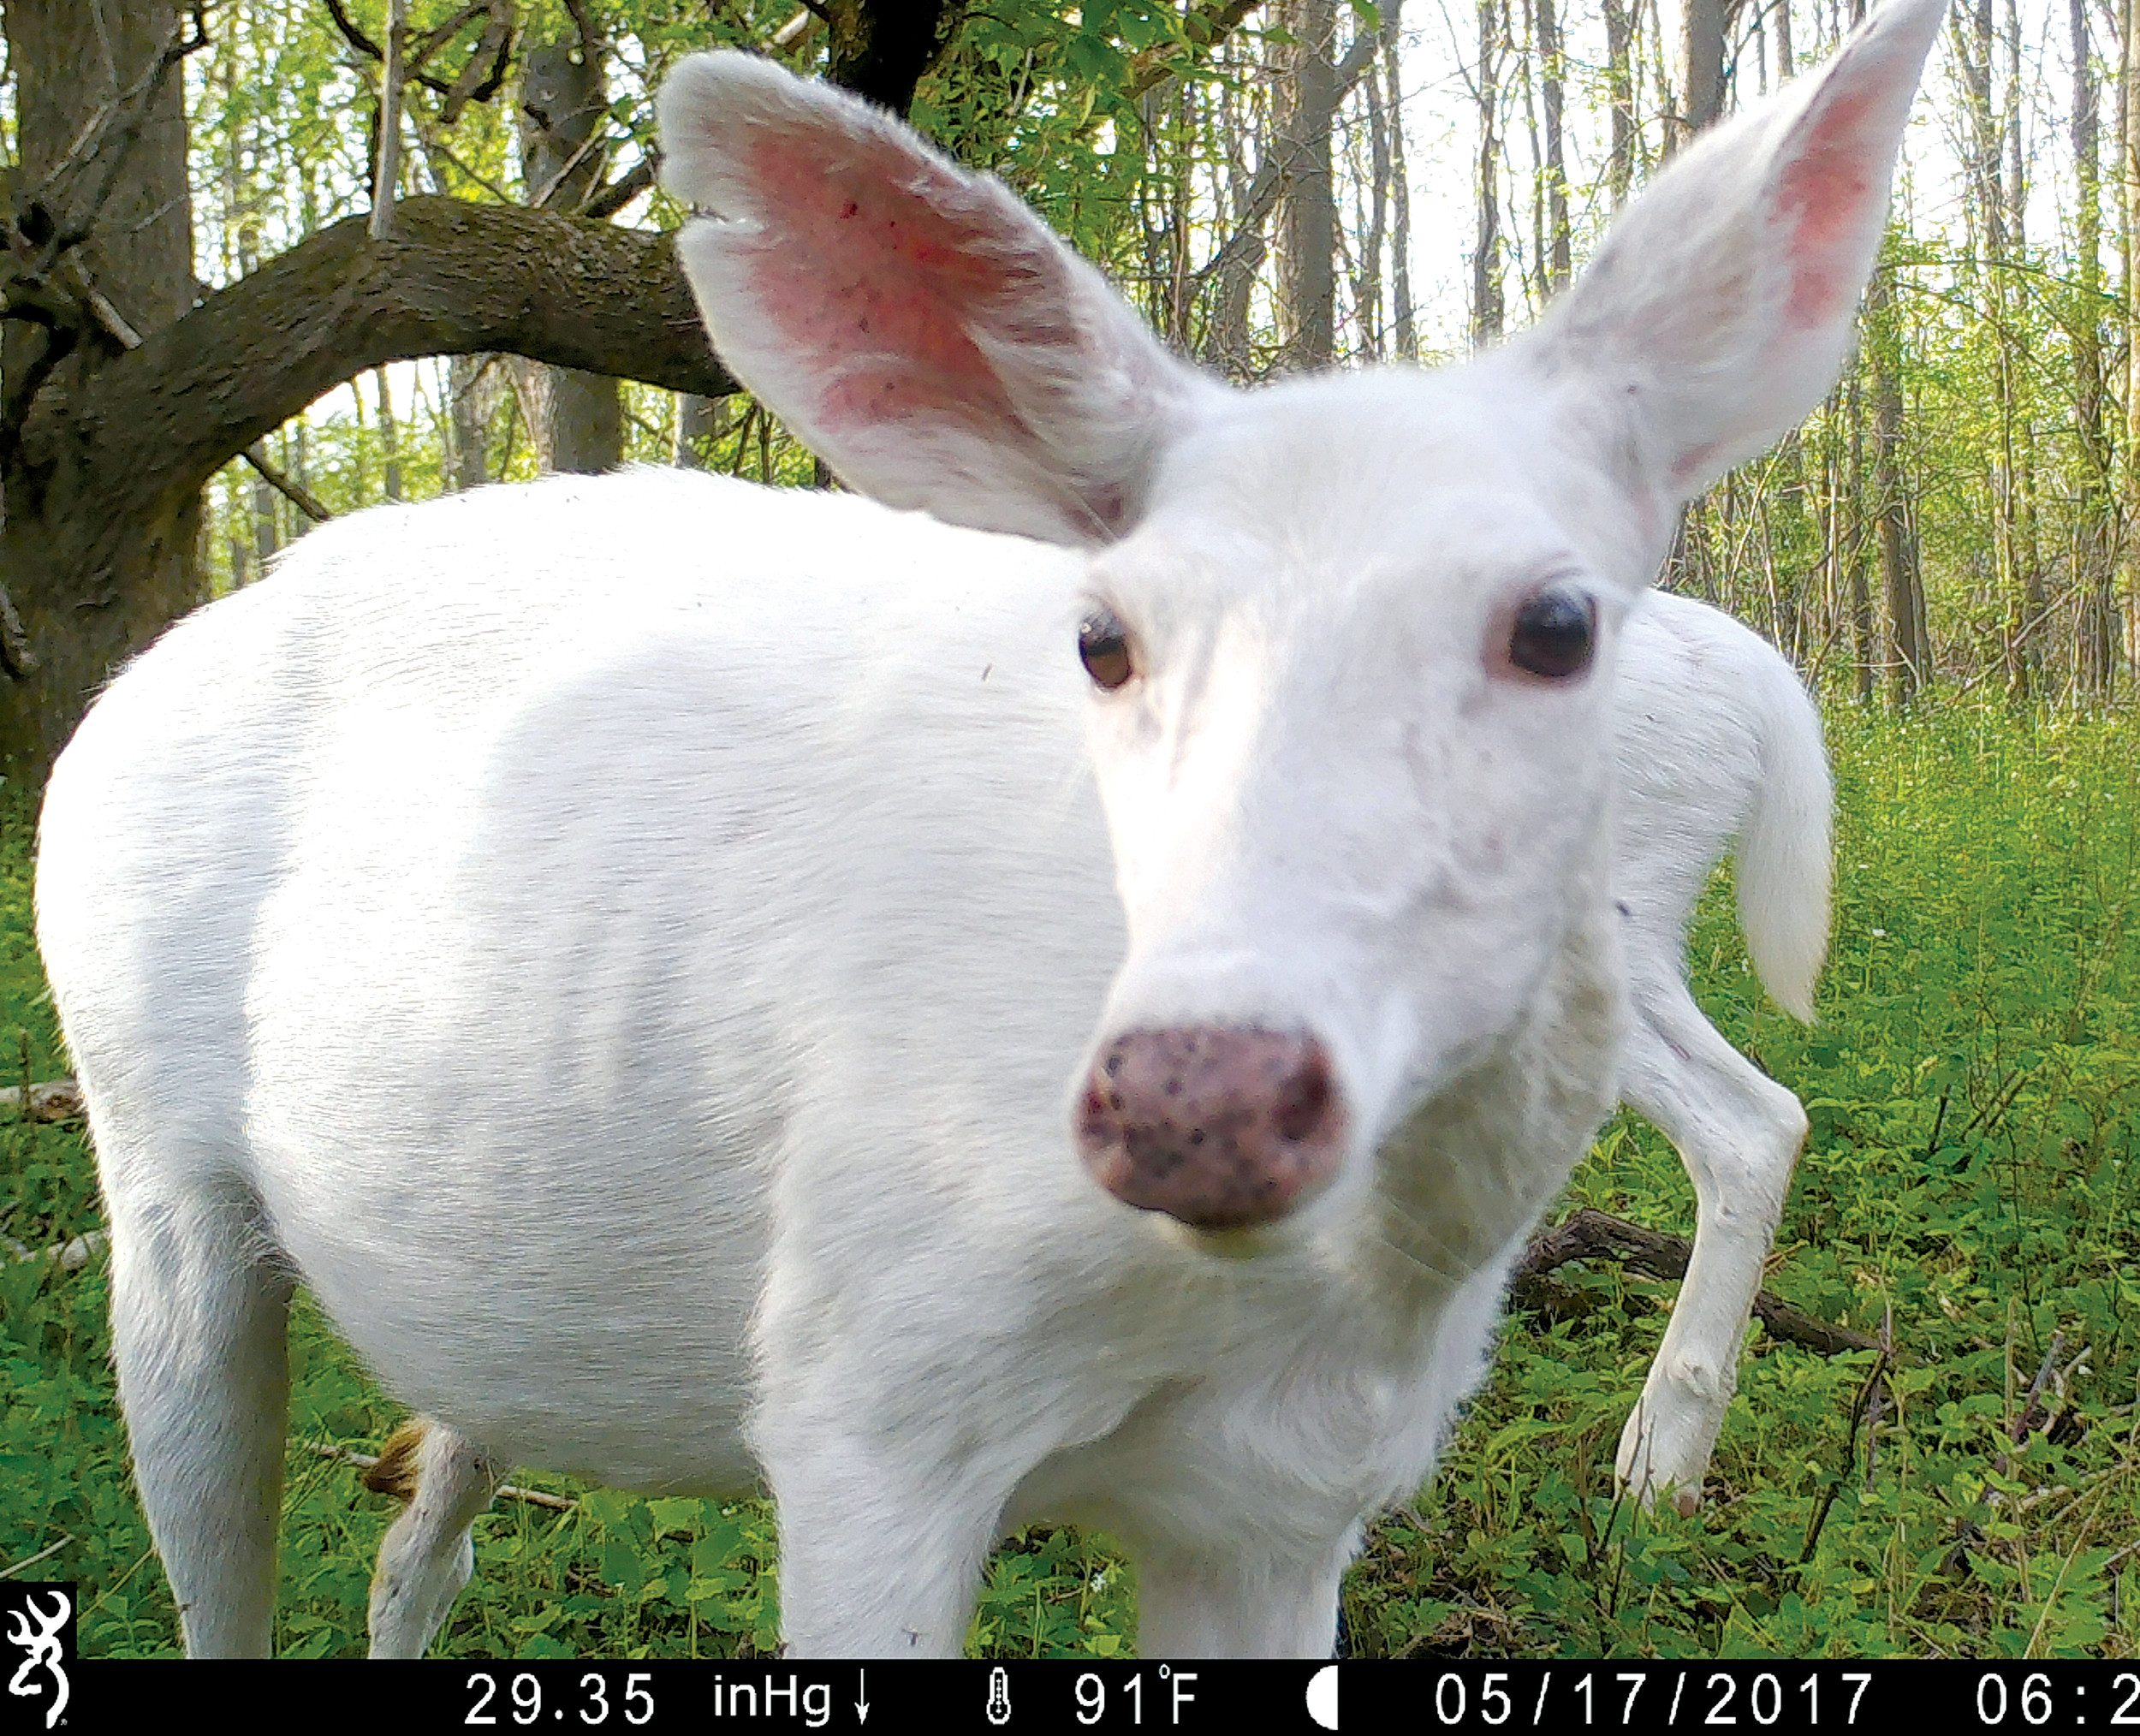 White deer captured by a trail camera are seen May 17 at the Seneca Army Depot in upstate New York. Public bus tours to view a rare herd of ghostly white deer at a former World War II Army weapons depot are slated to begin fall 2017.